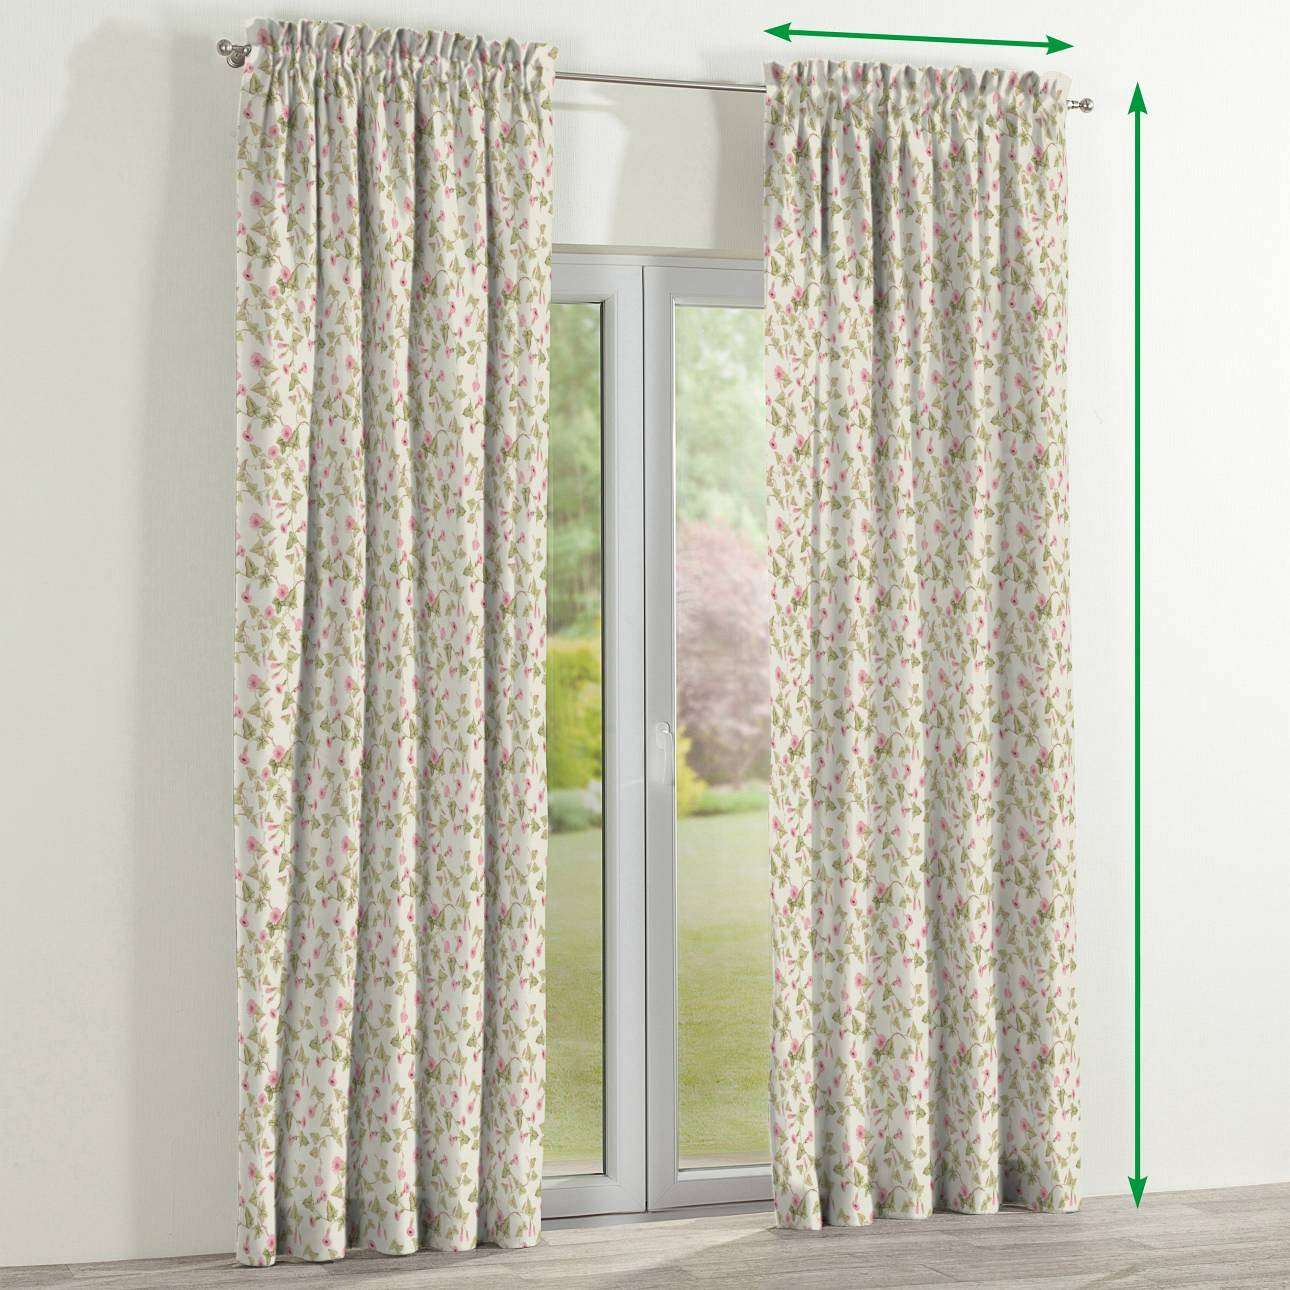 Slot and frill curtains in collection Mirella, fabric: 140-41